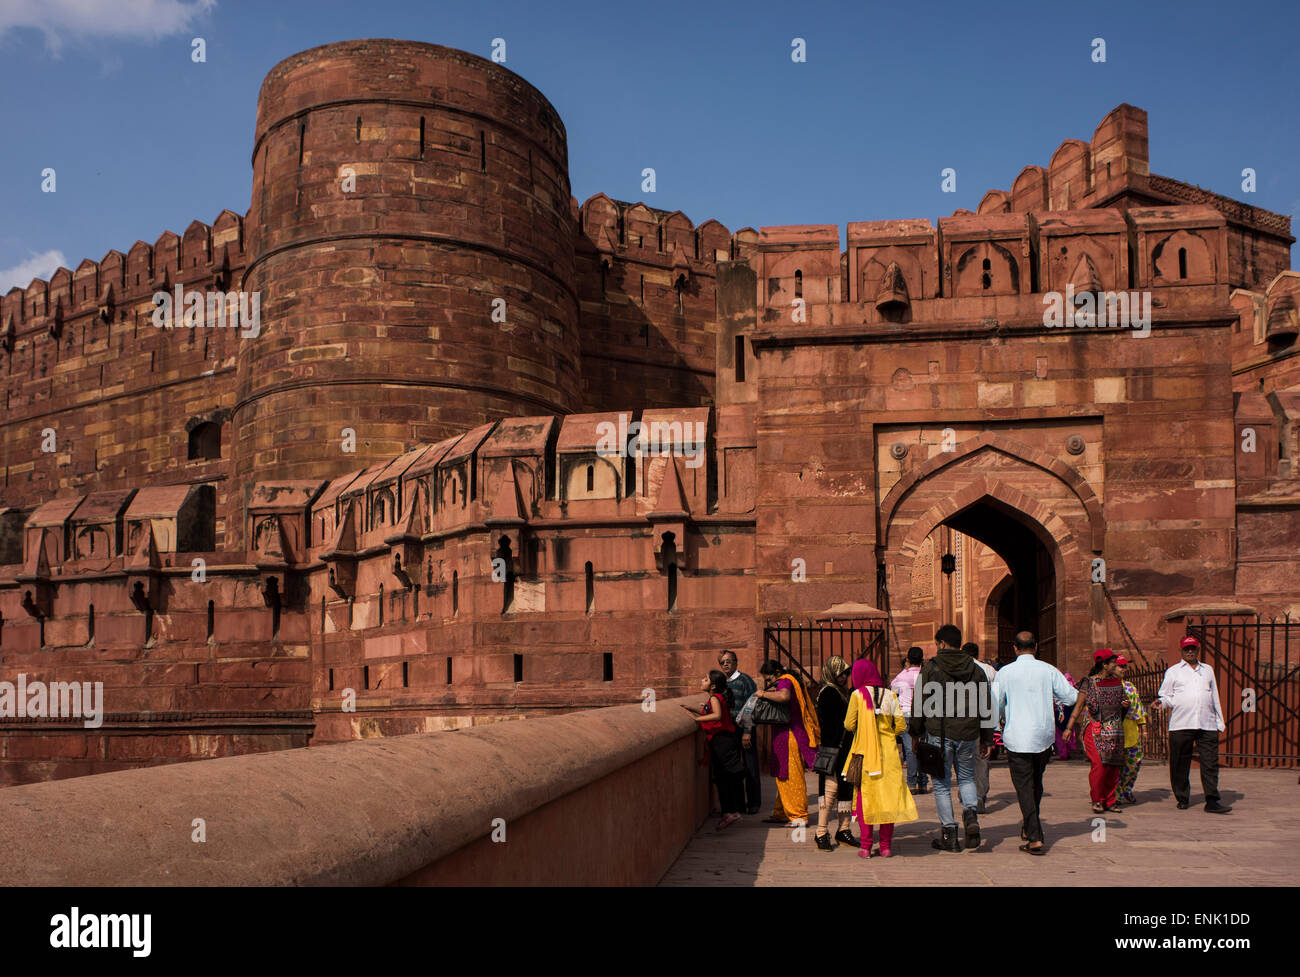 Exterior of Agra Fort, UNESCO World Heritage Site, Agra, Uttar Pradesh, India, Asia - Stock Image